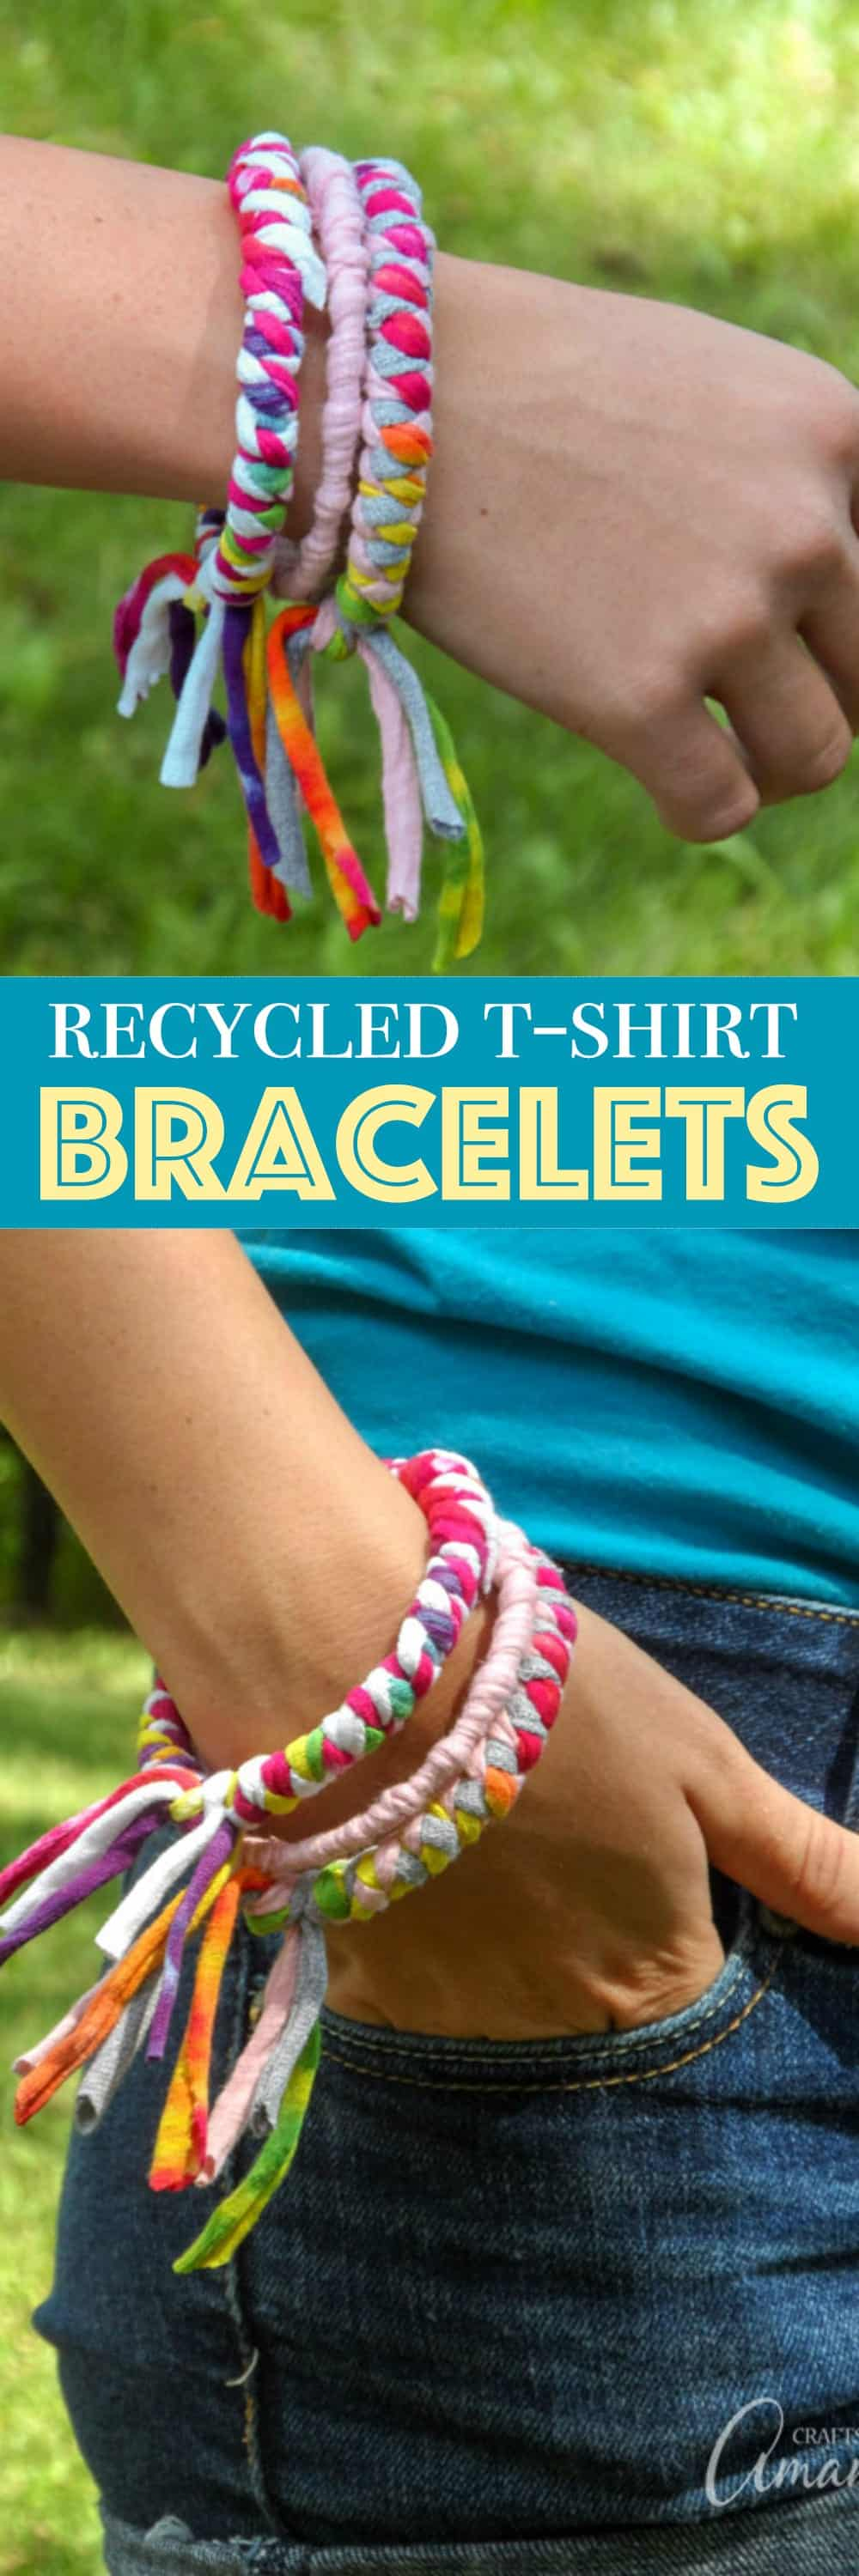 These colorful t-shirt bracelets are an easy to make recycled craft project and are perfect for teenagers or preteens! All you need are inexpensive bangle bracelets and some old t-shirts to make these pretty fashion statements.